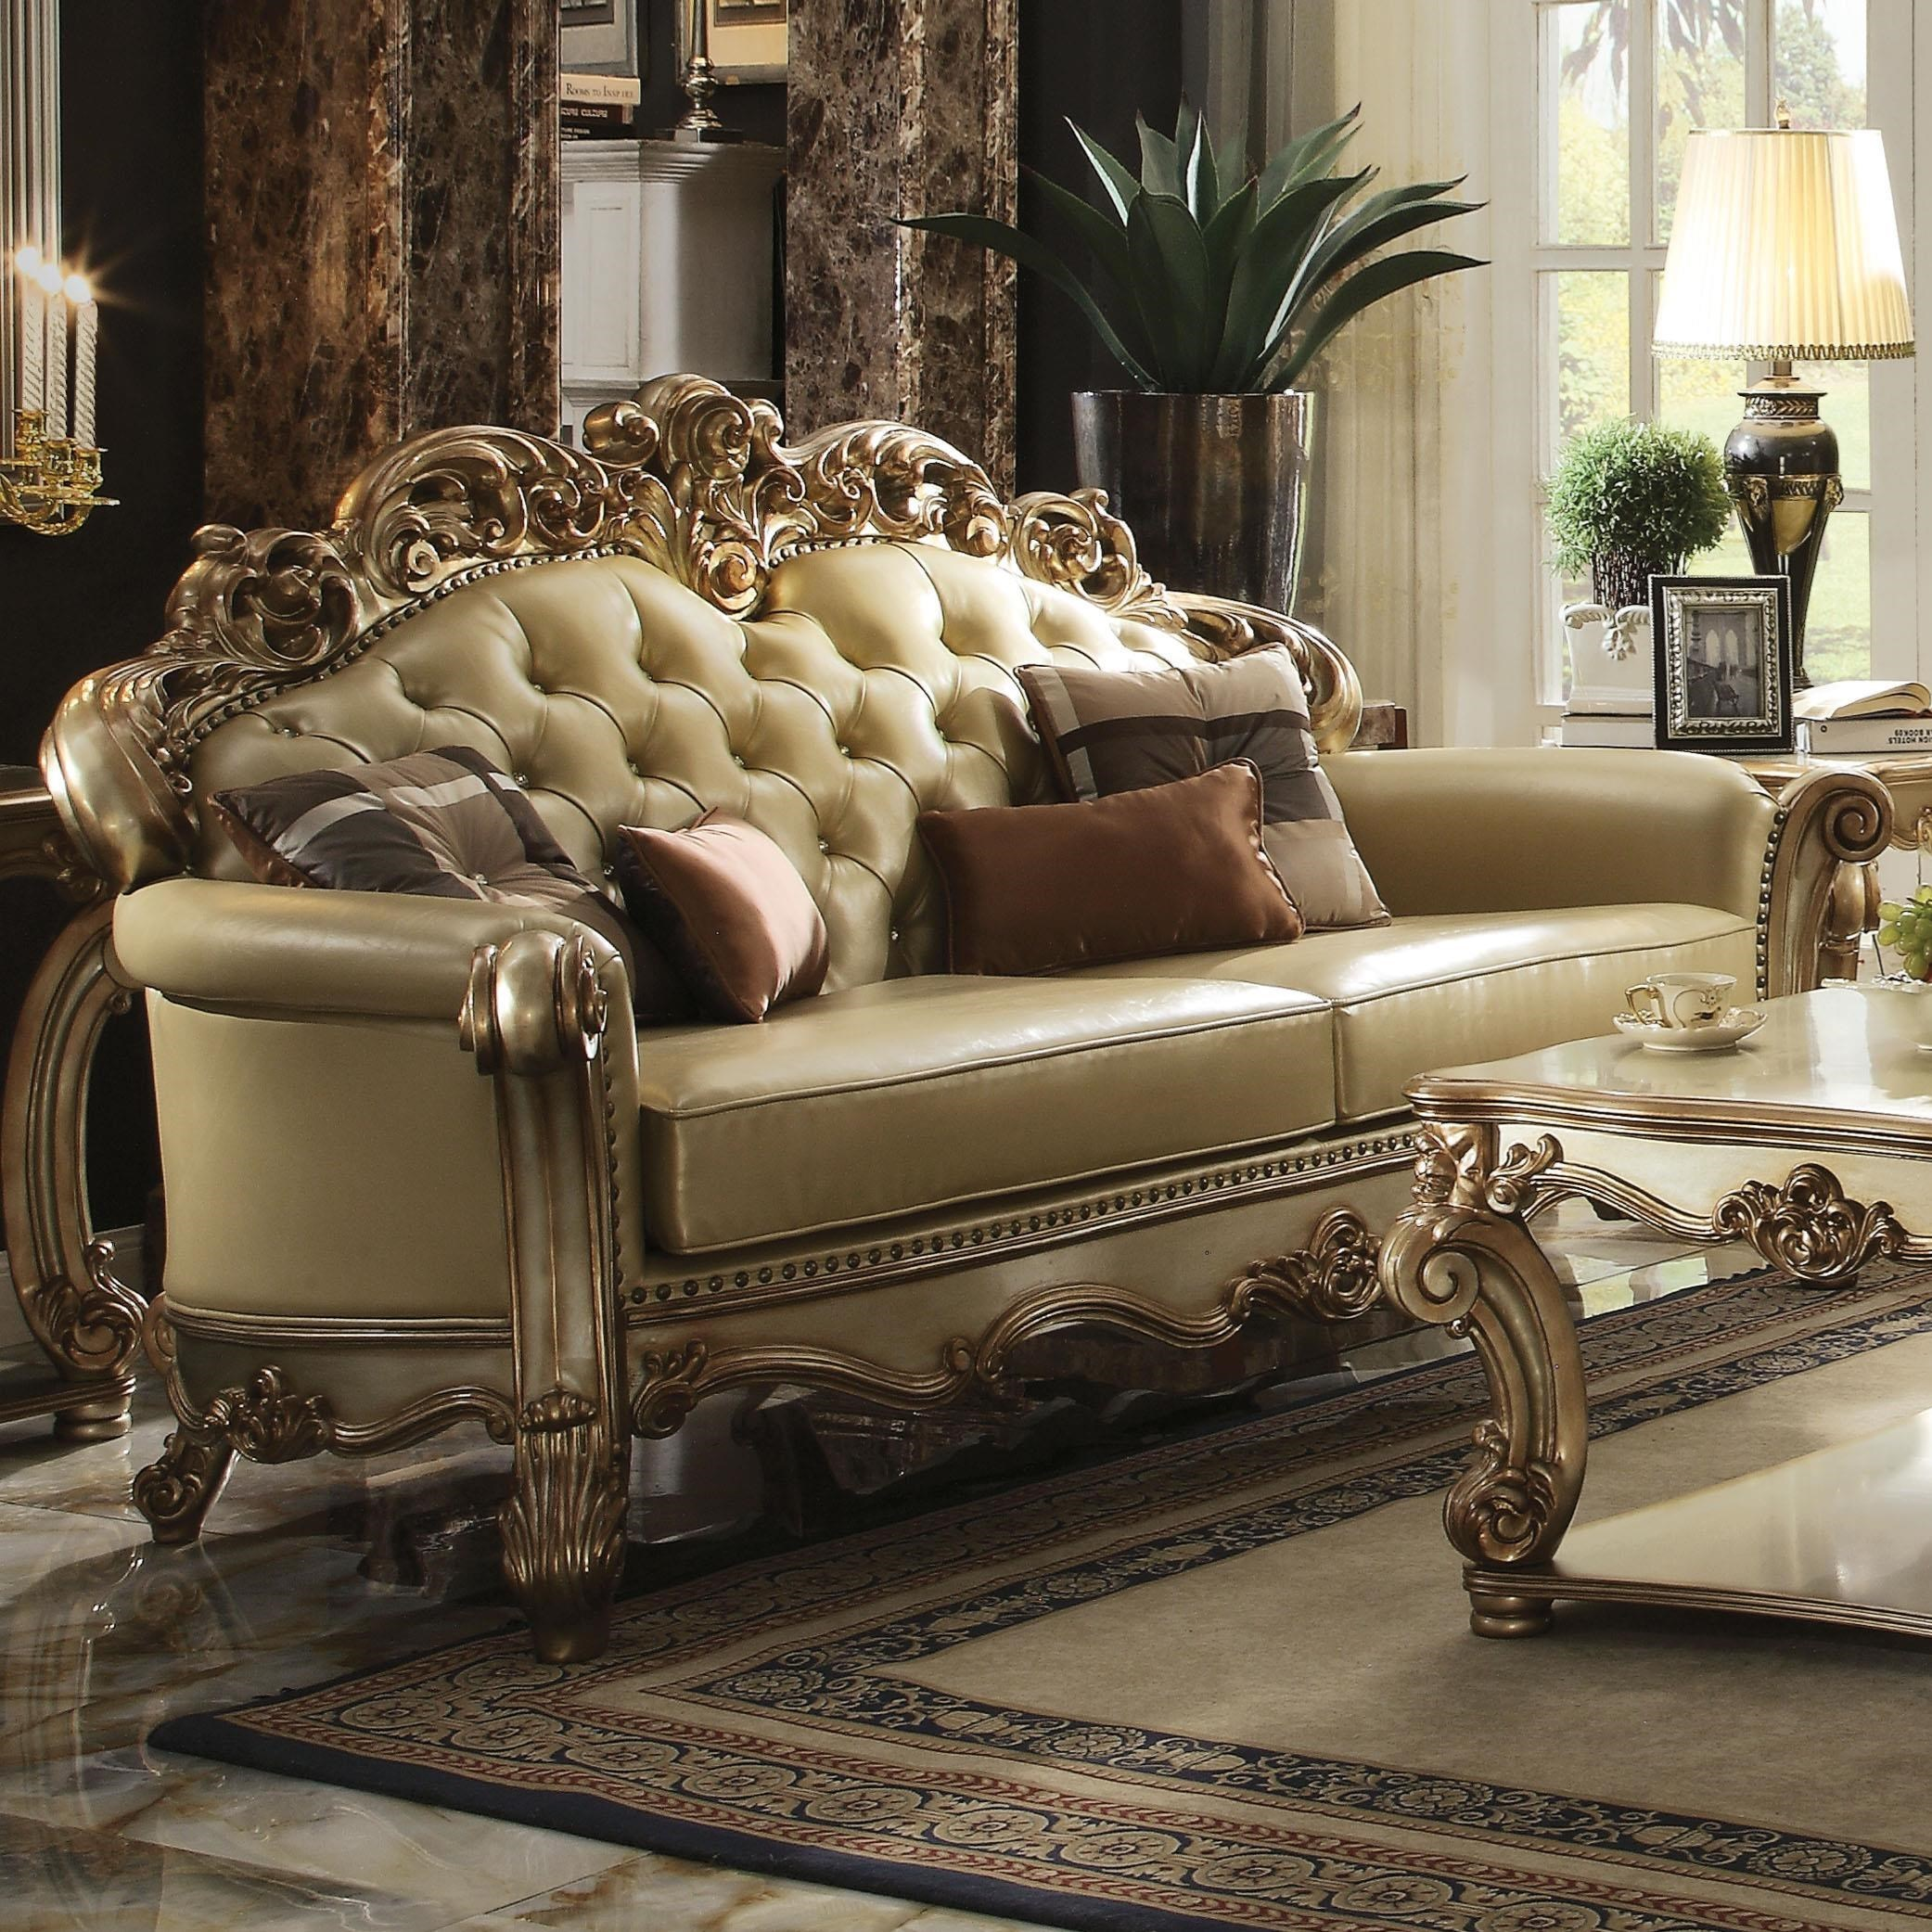 Vendome Sofa by Acme Furniture at Rooms for Less